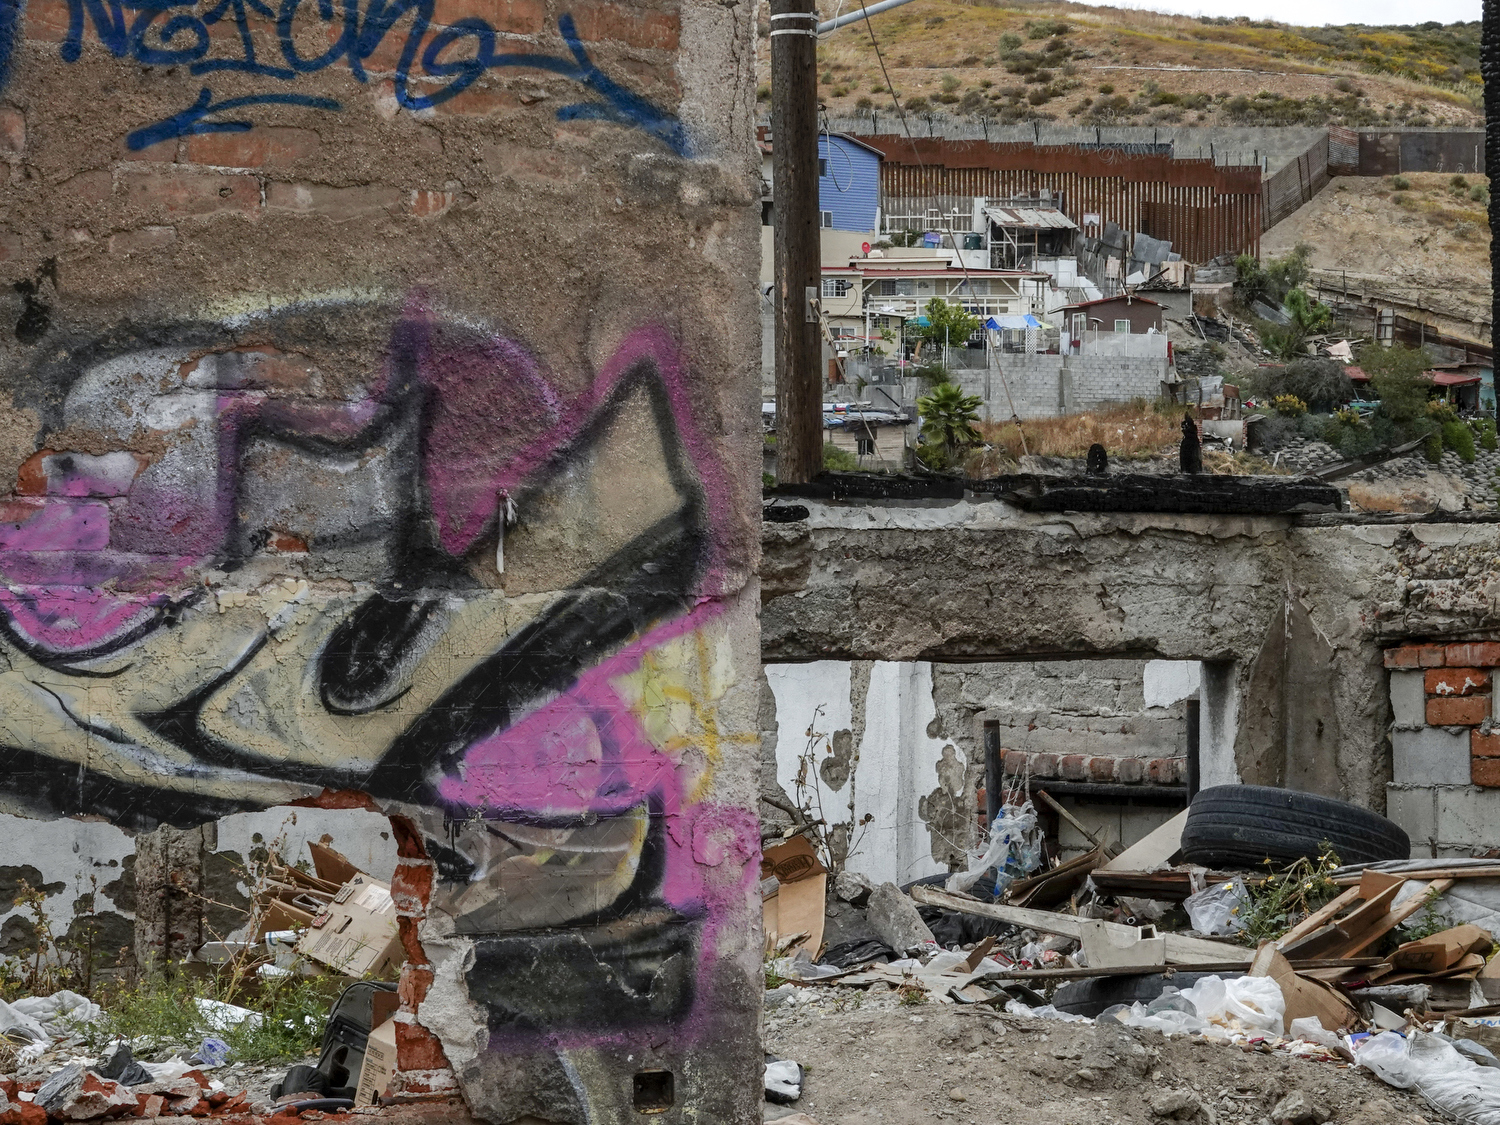 2019. Tijuana. Mexico.  The border wall seen from a destroyed building near Mexico-USA border.